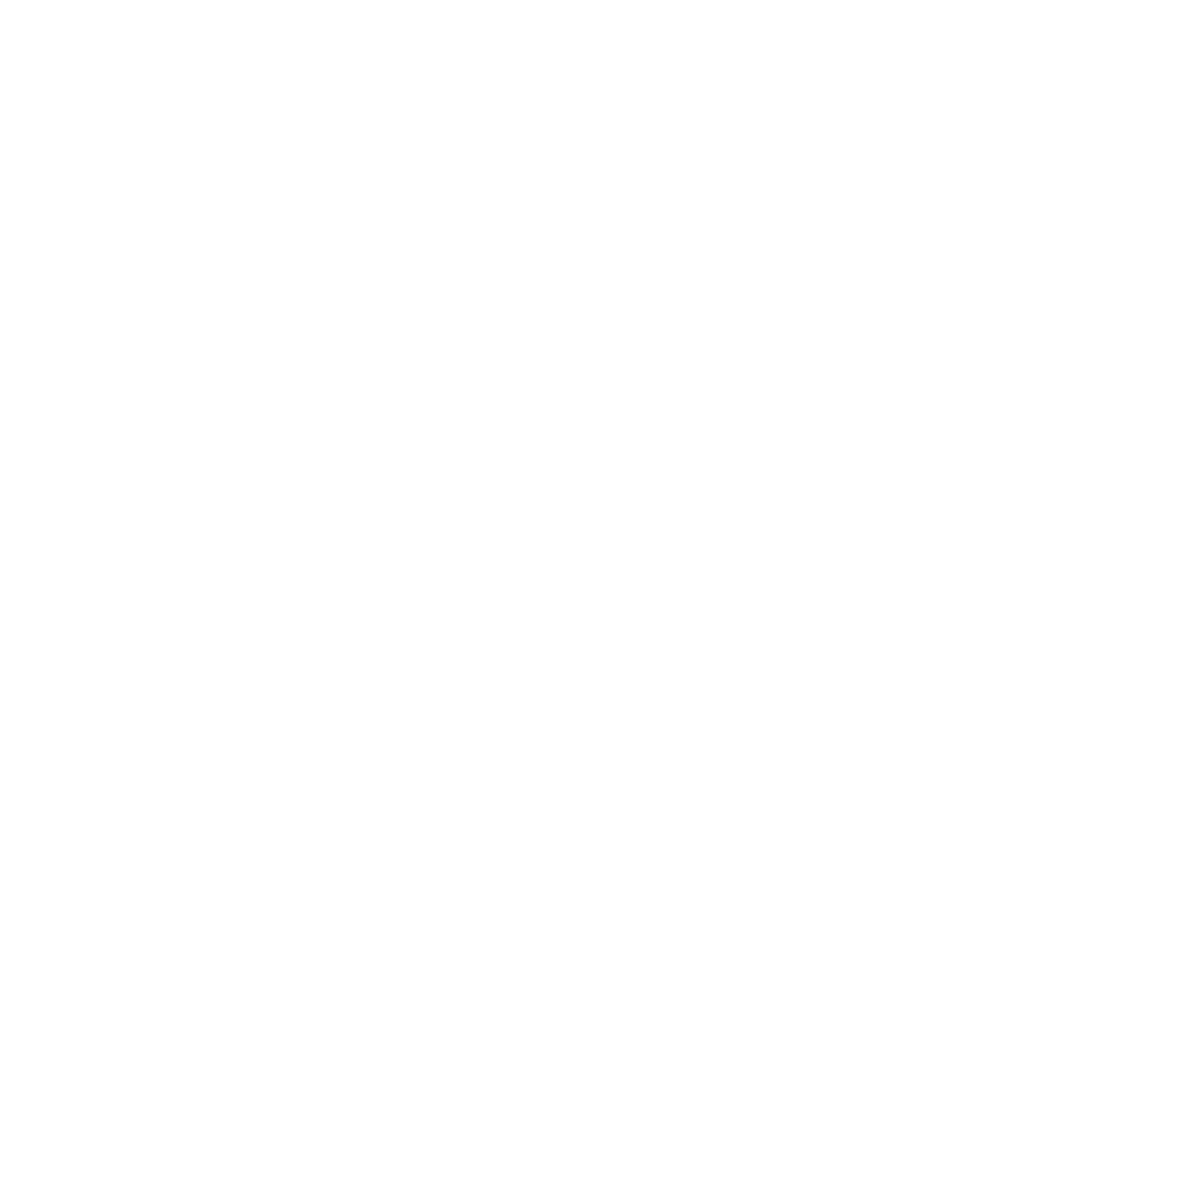 Bajo la licencia Creative Commons: